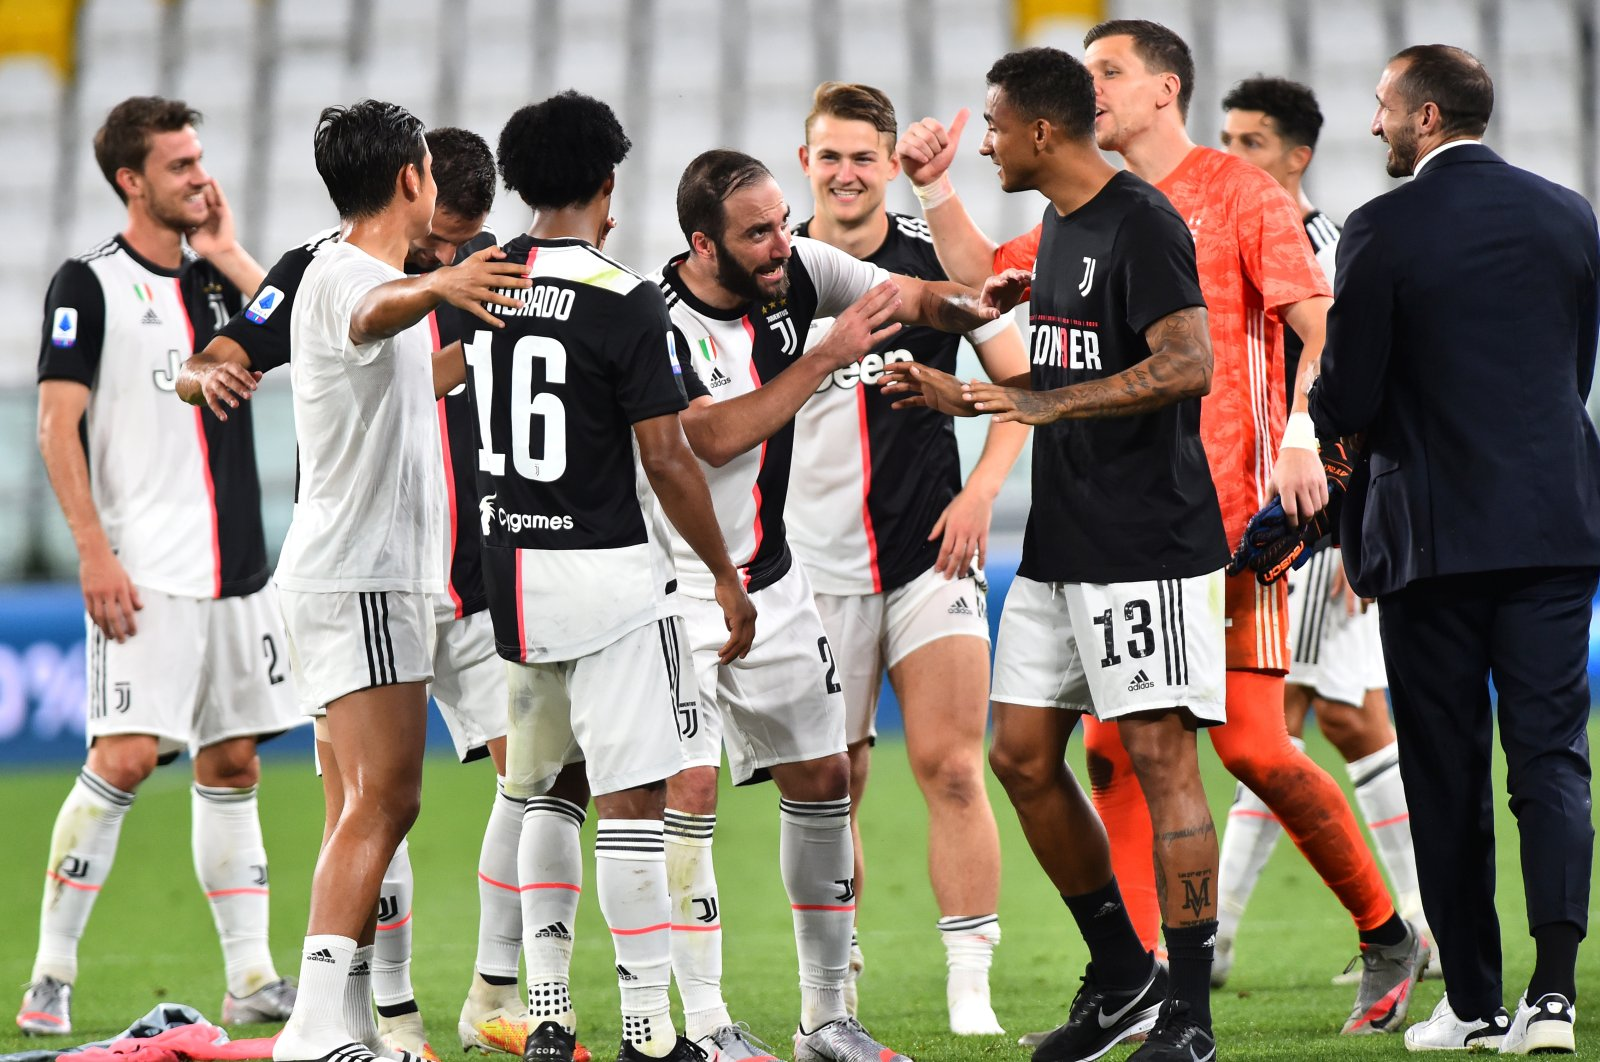 Juventus players celebrate winning the match against Sampdoria, and Serie A, at Allianz Stadium, Turin, Italy, July 26, 2020. (Reuters Photo)